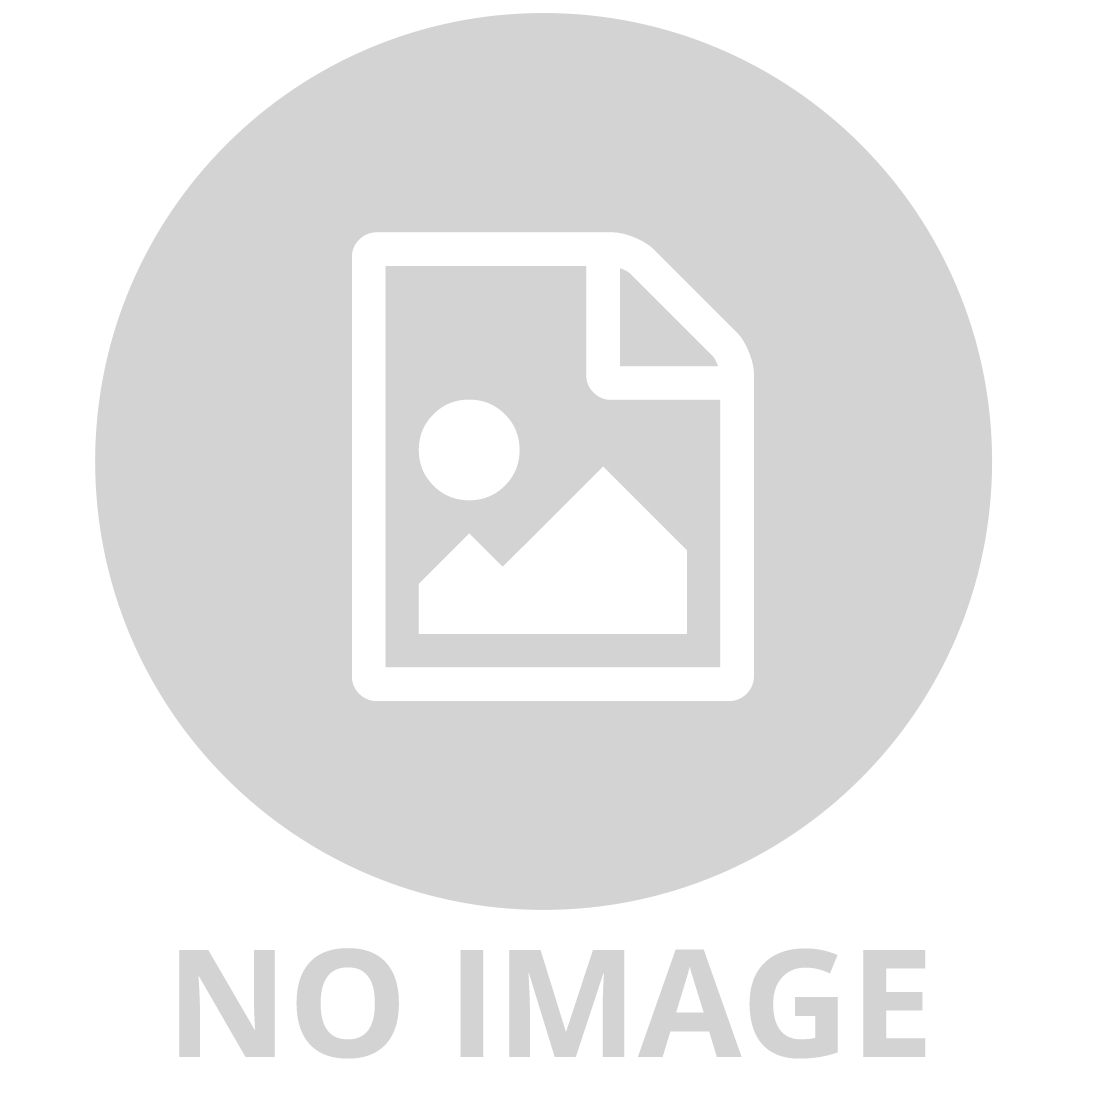 WALTHERS N GAUGE HOLE IN ONE DONUT SHOP